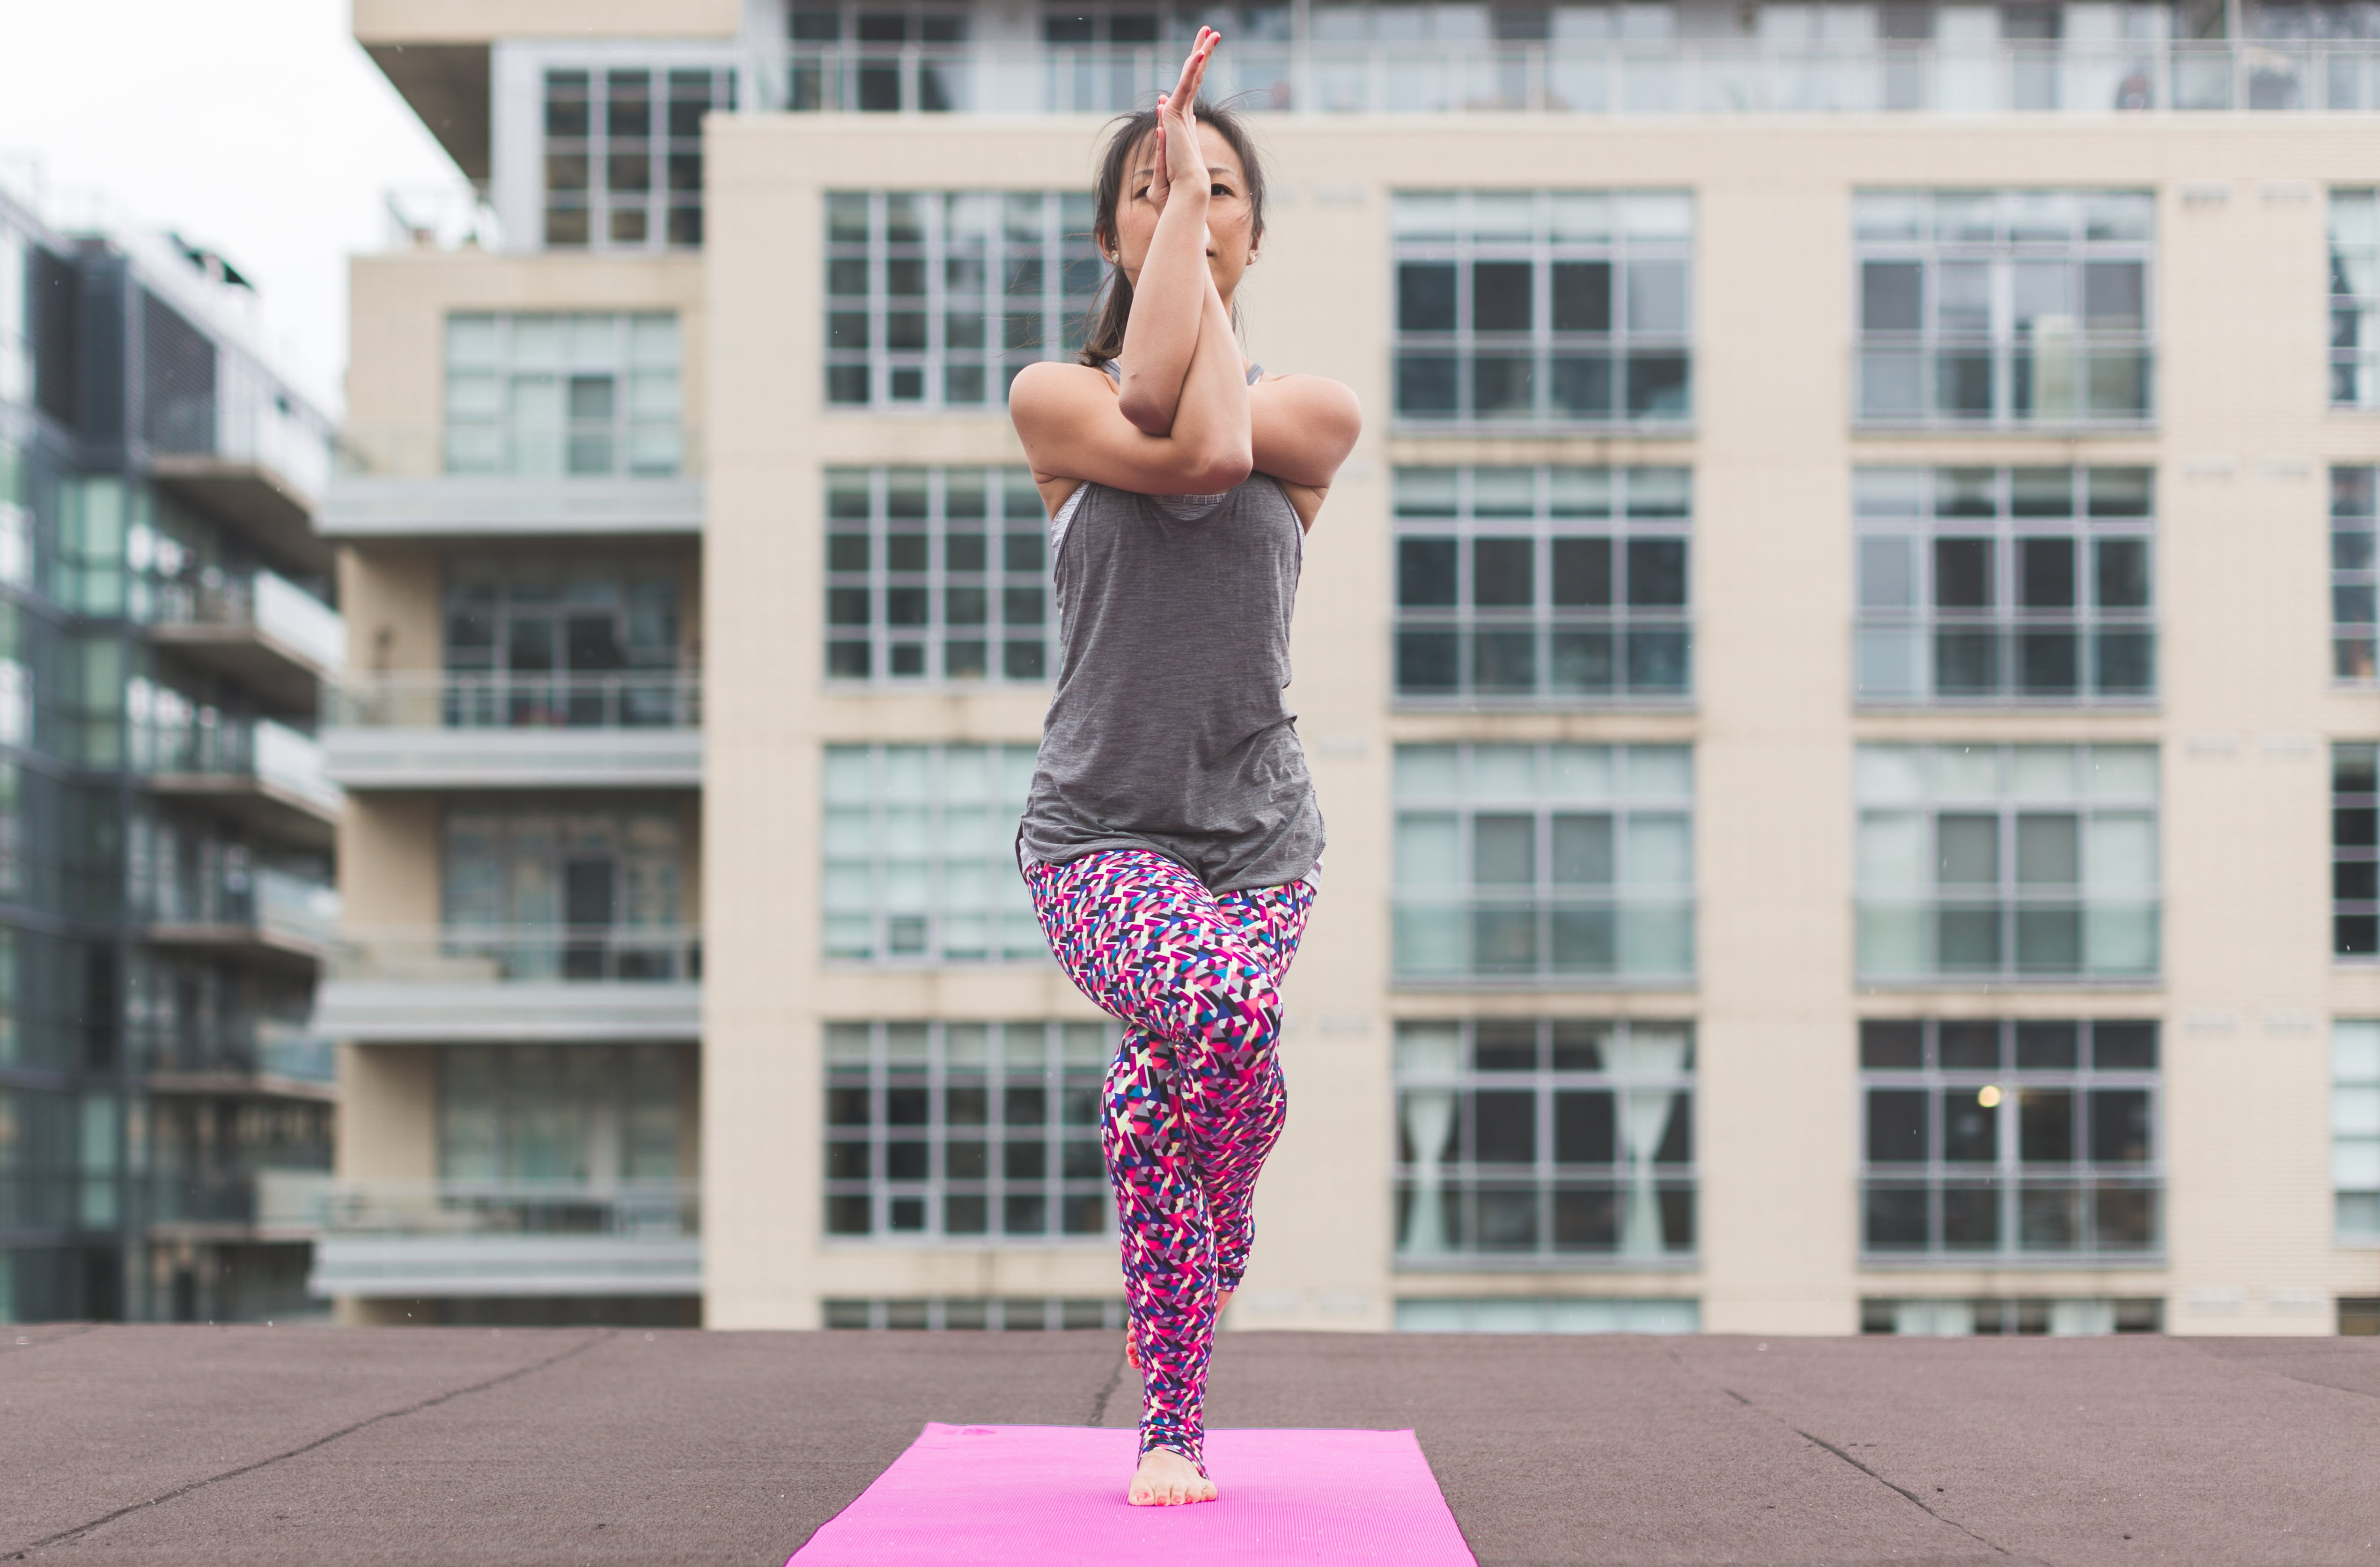 Woman in Gray Top and Pink Pants Yoga on Pink Mat